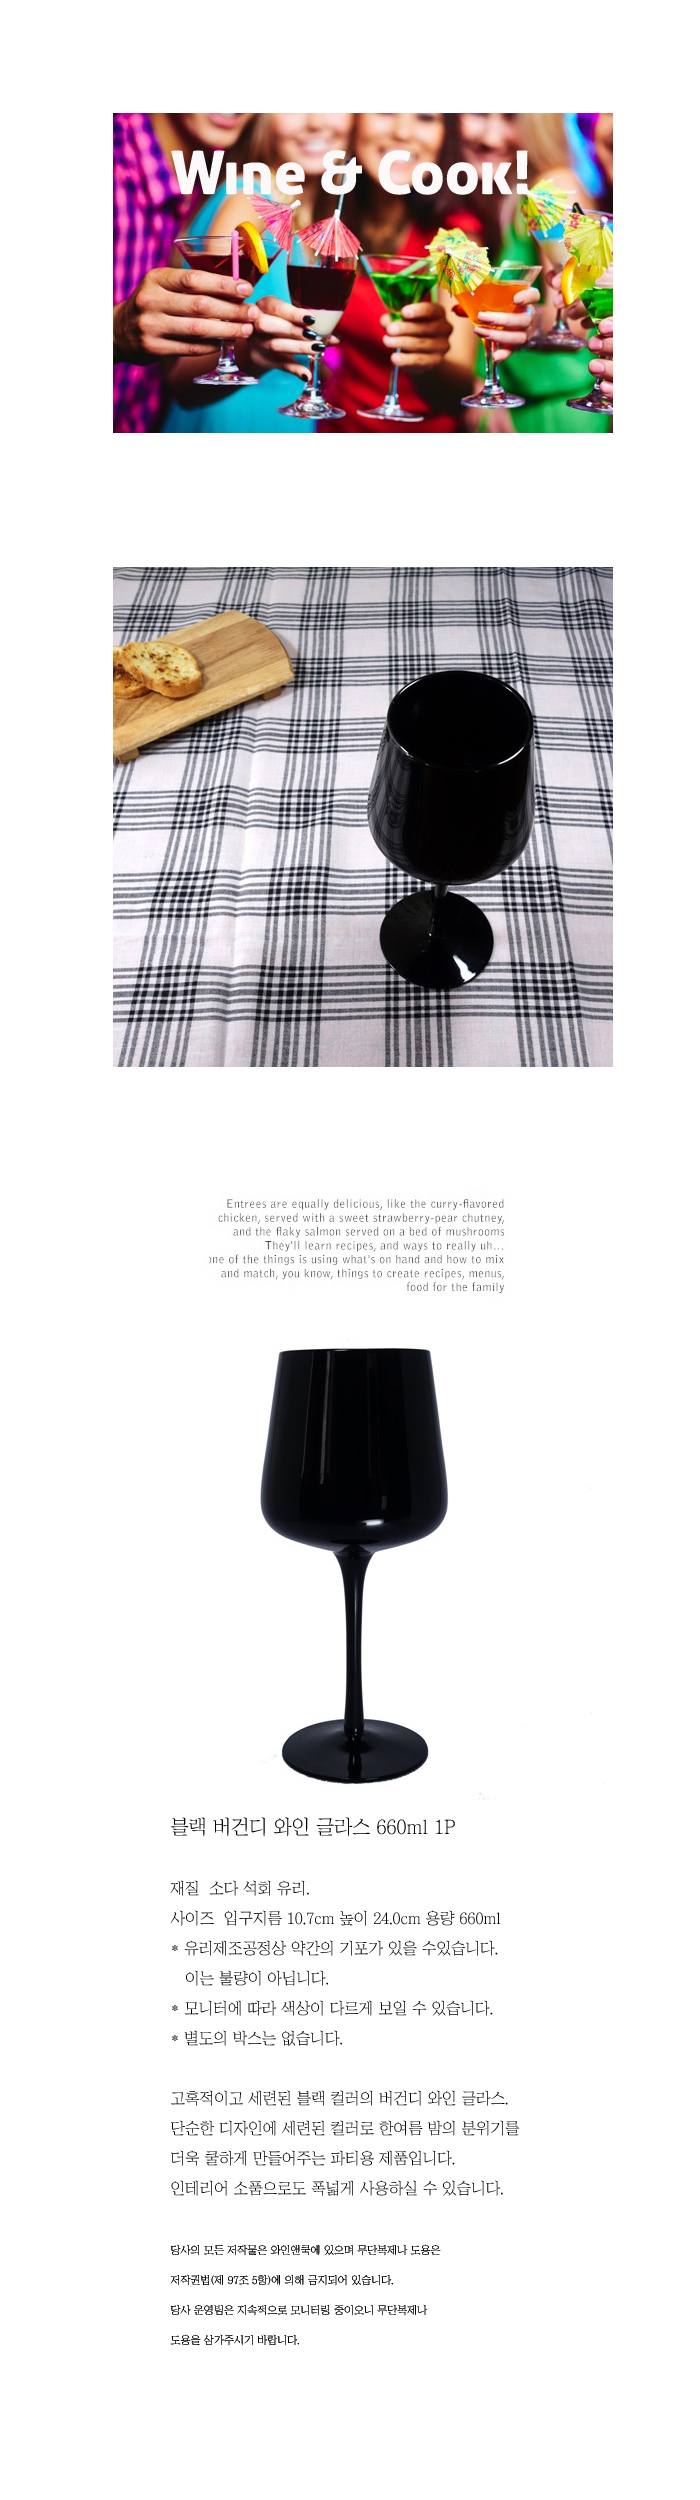 [ Bormioli ] Black Burgundy Wine Glass 660ml 1P